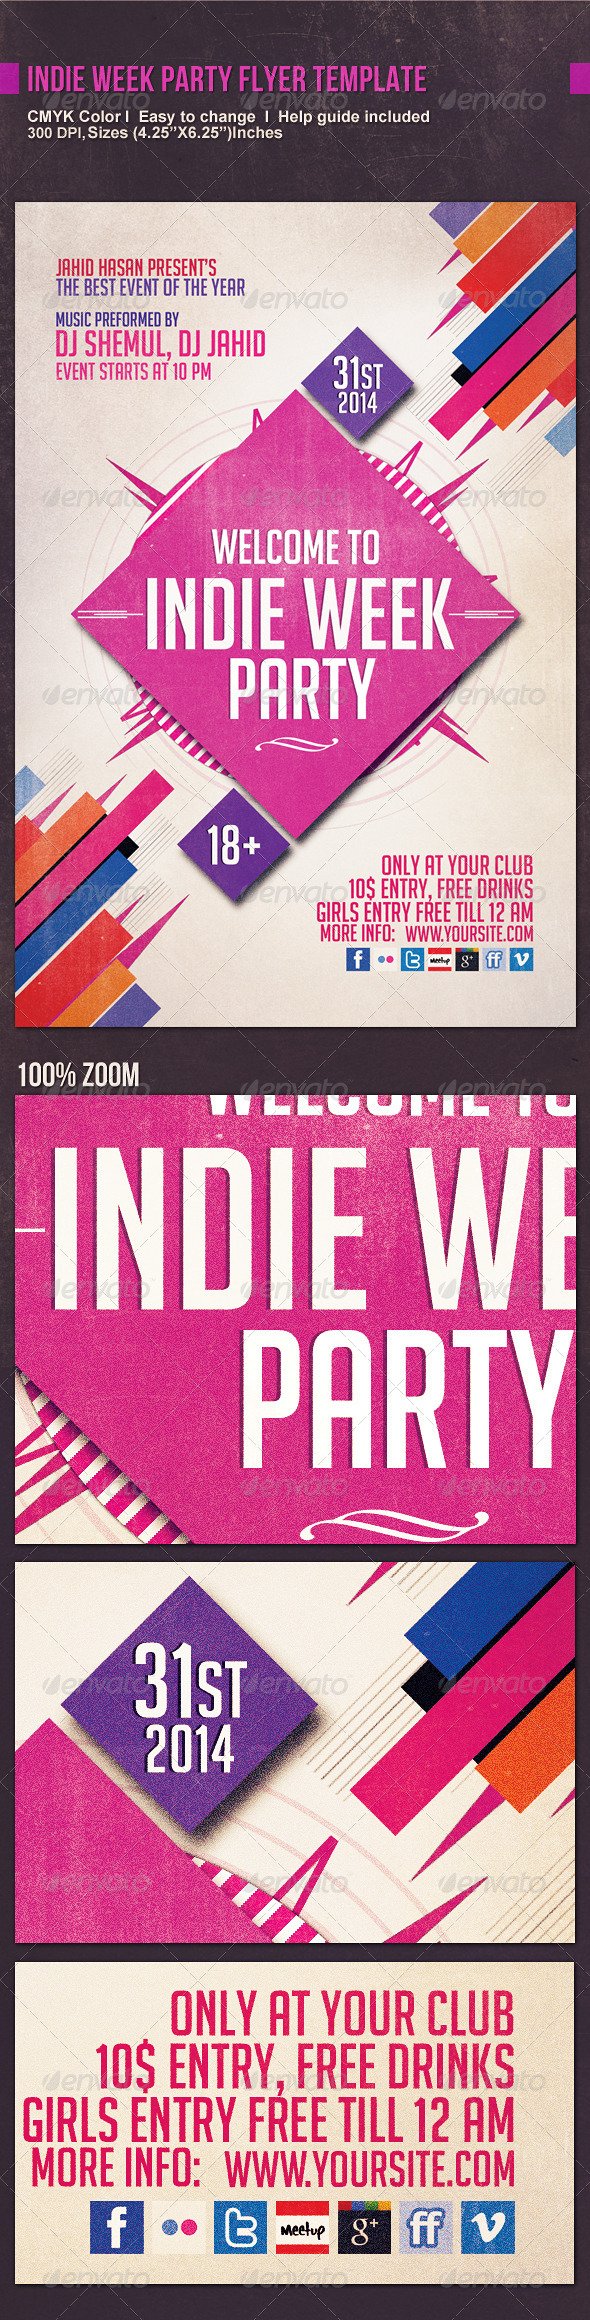 GraphicRiver Indie Week Party Flyer Template 6049590